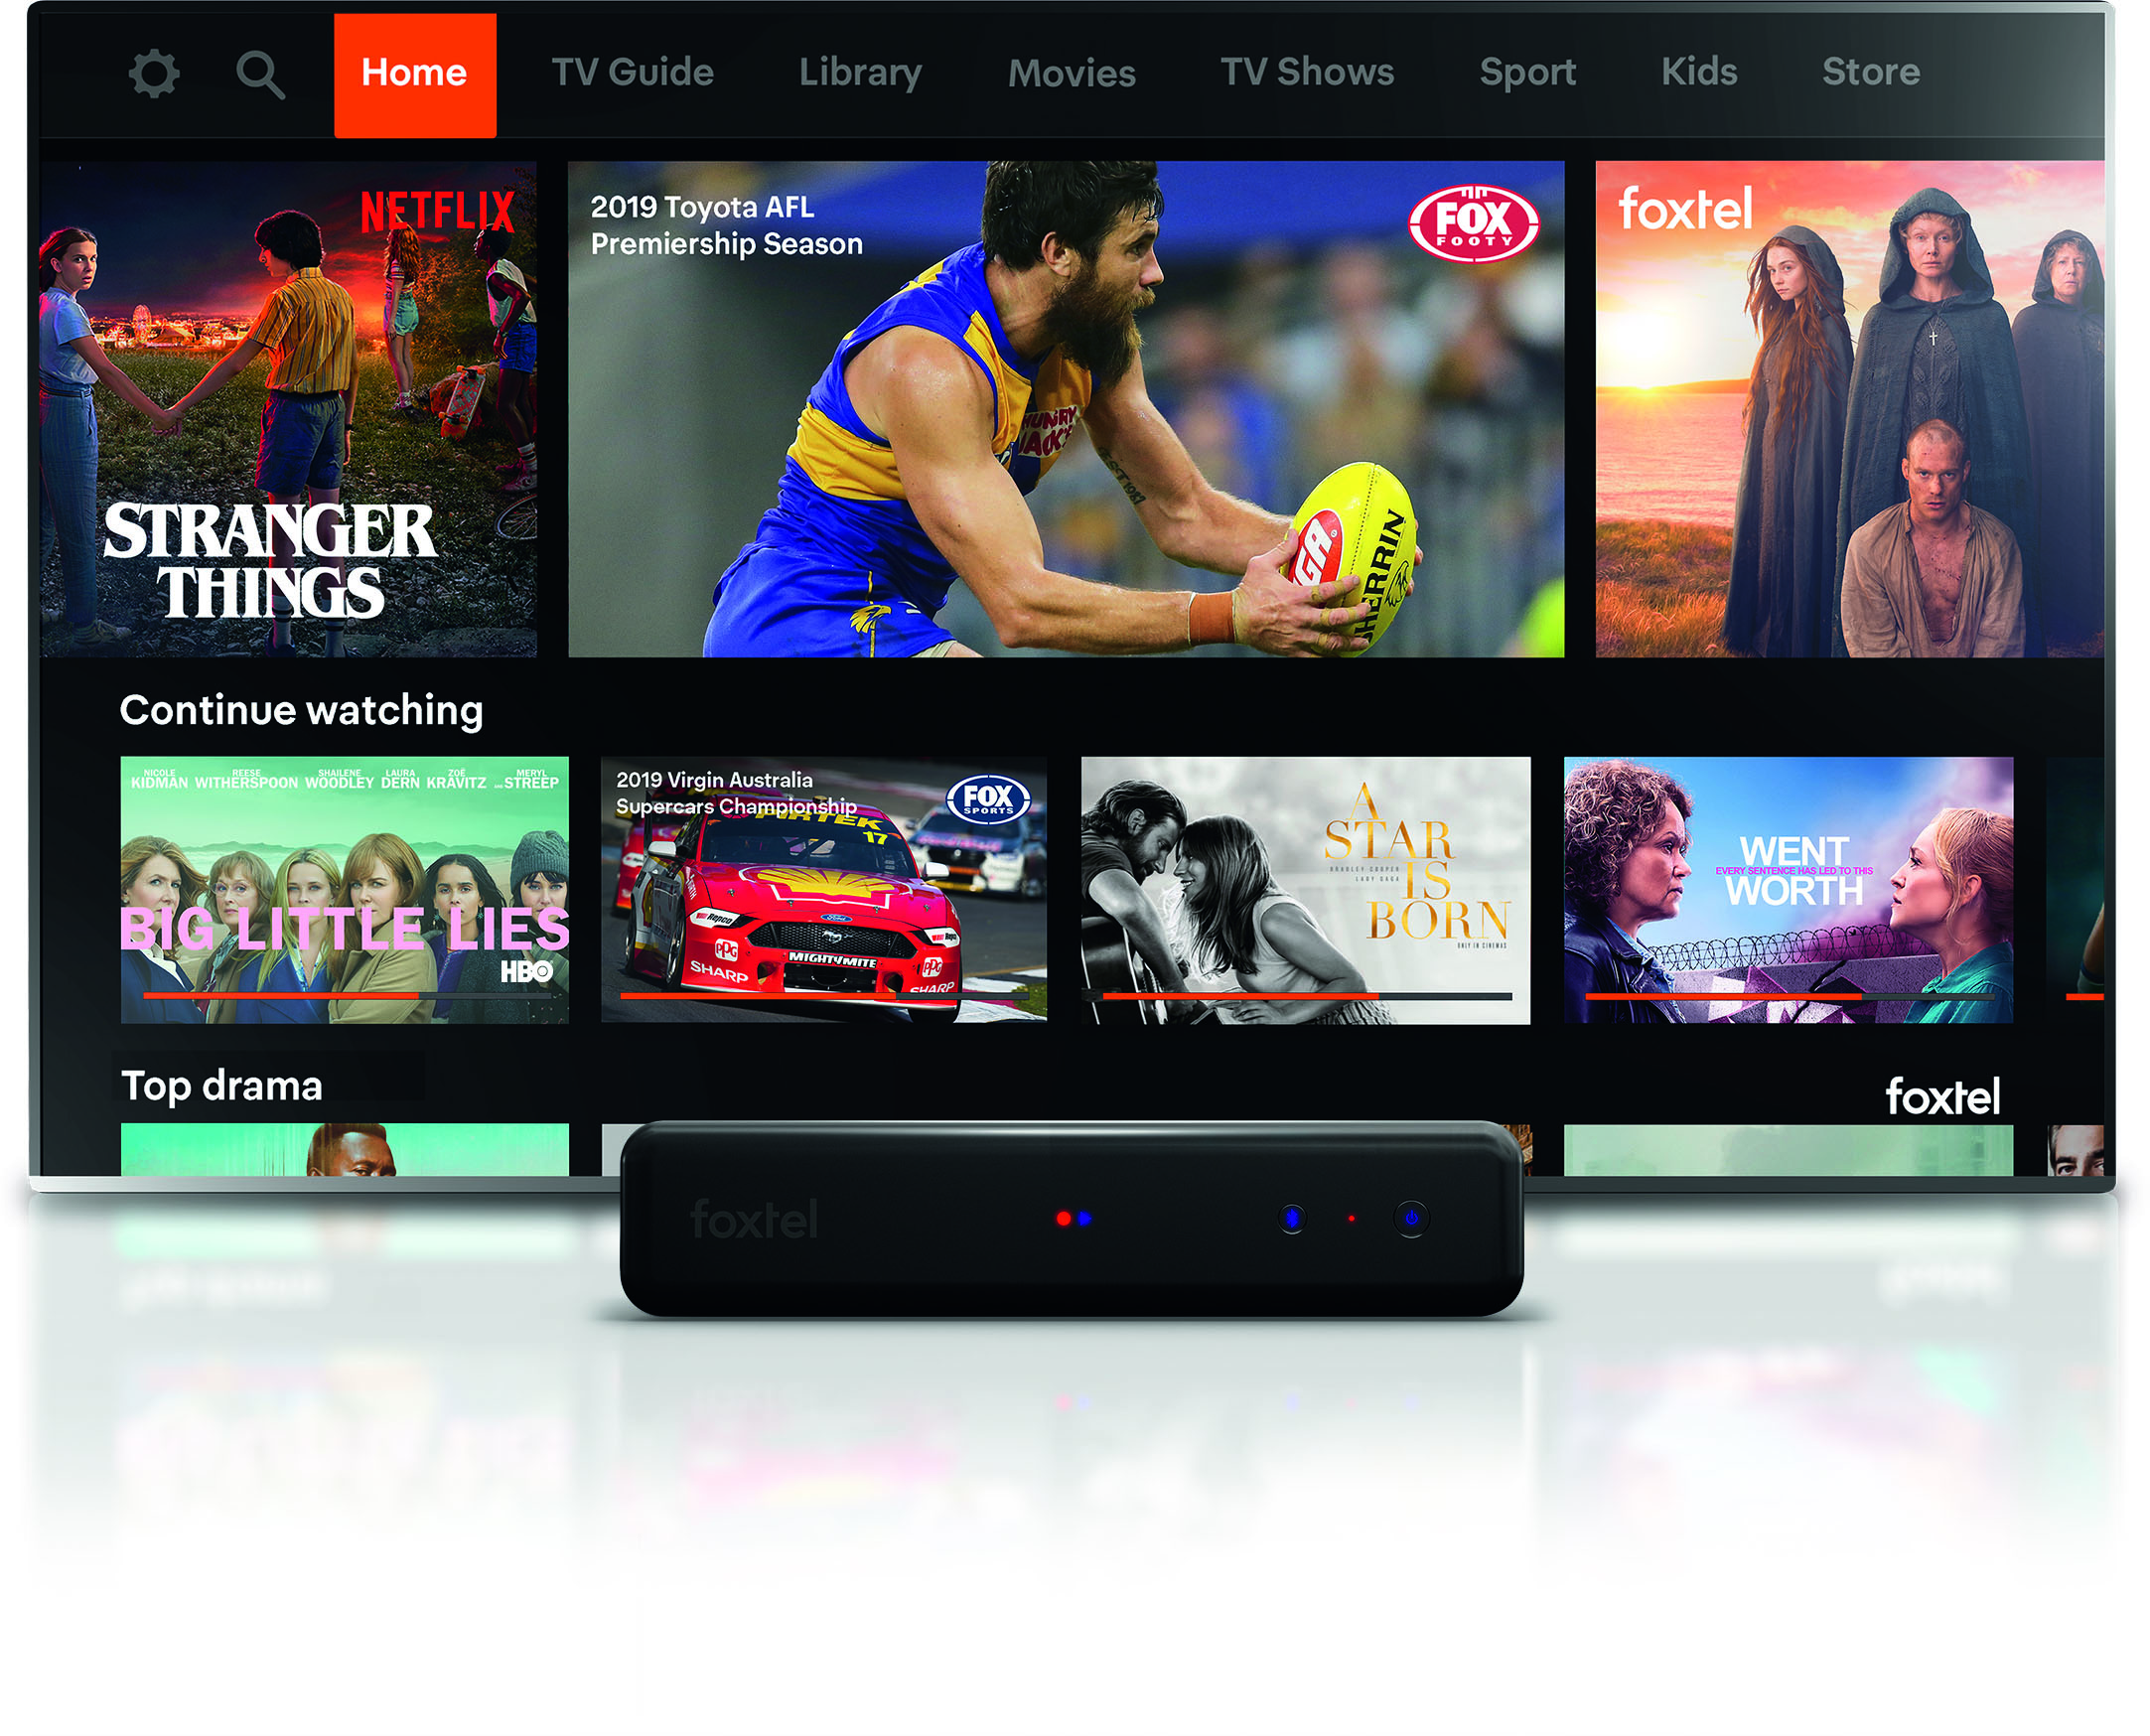 FOXTEL 'Next Gen' Interface with NETFLIX rolls out to customers as